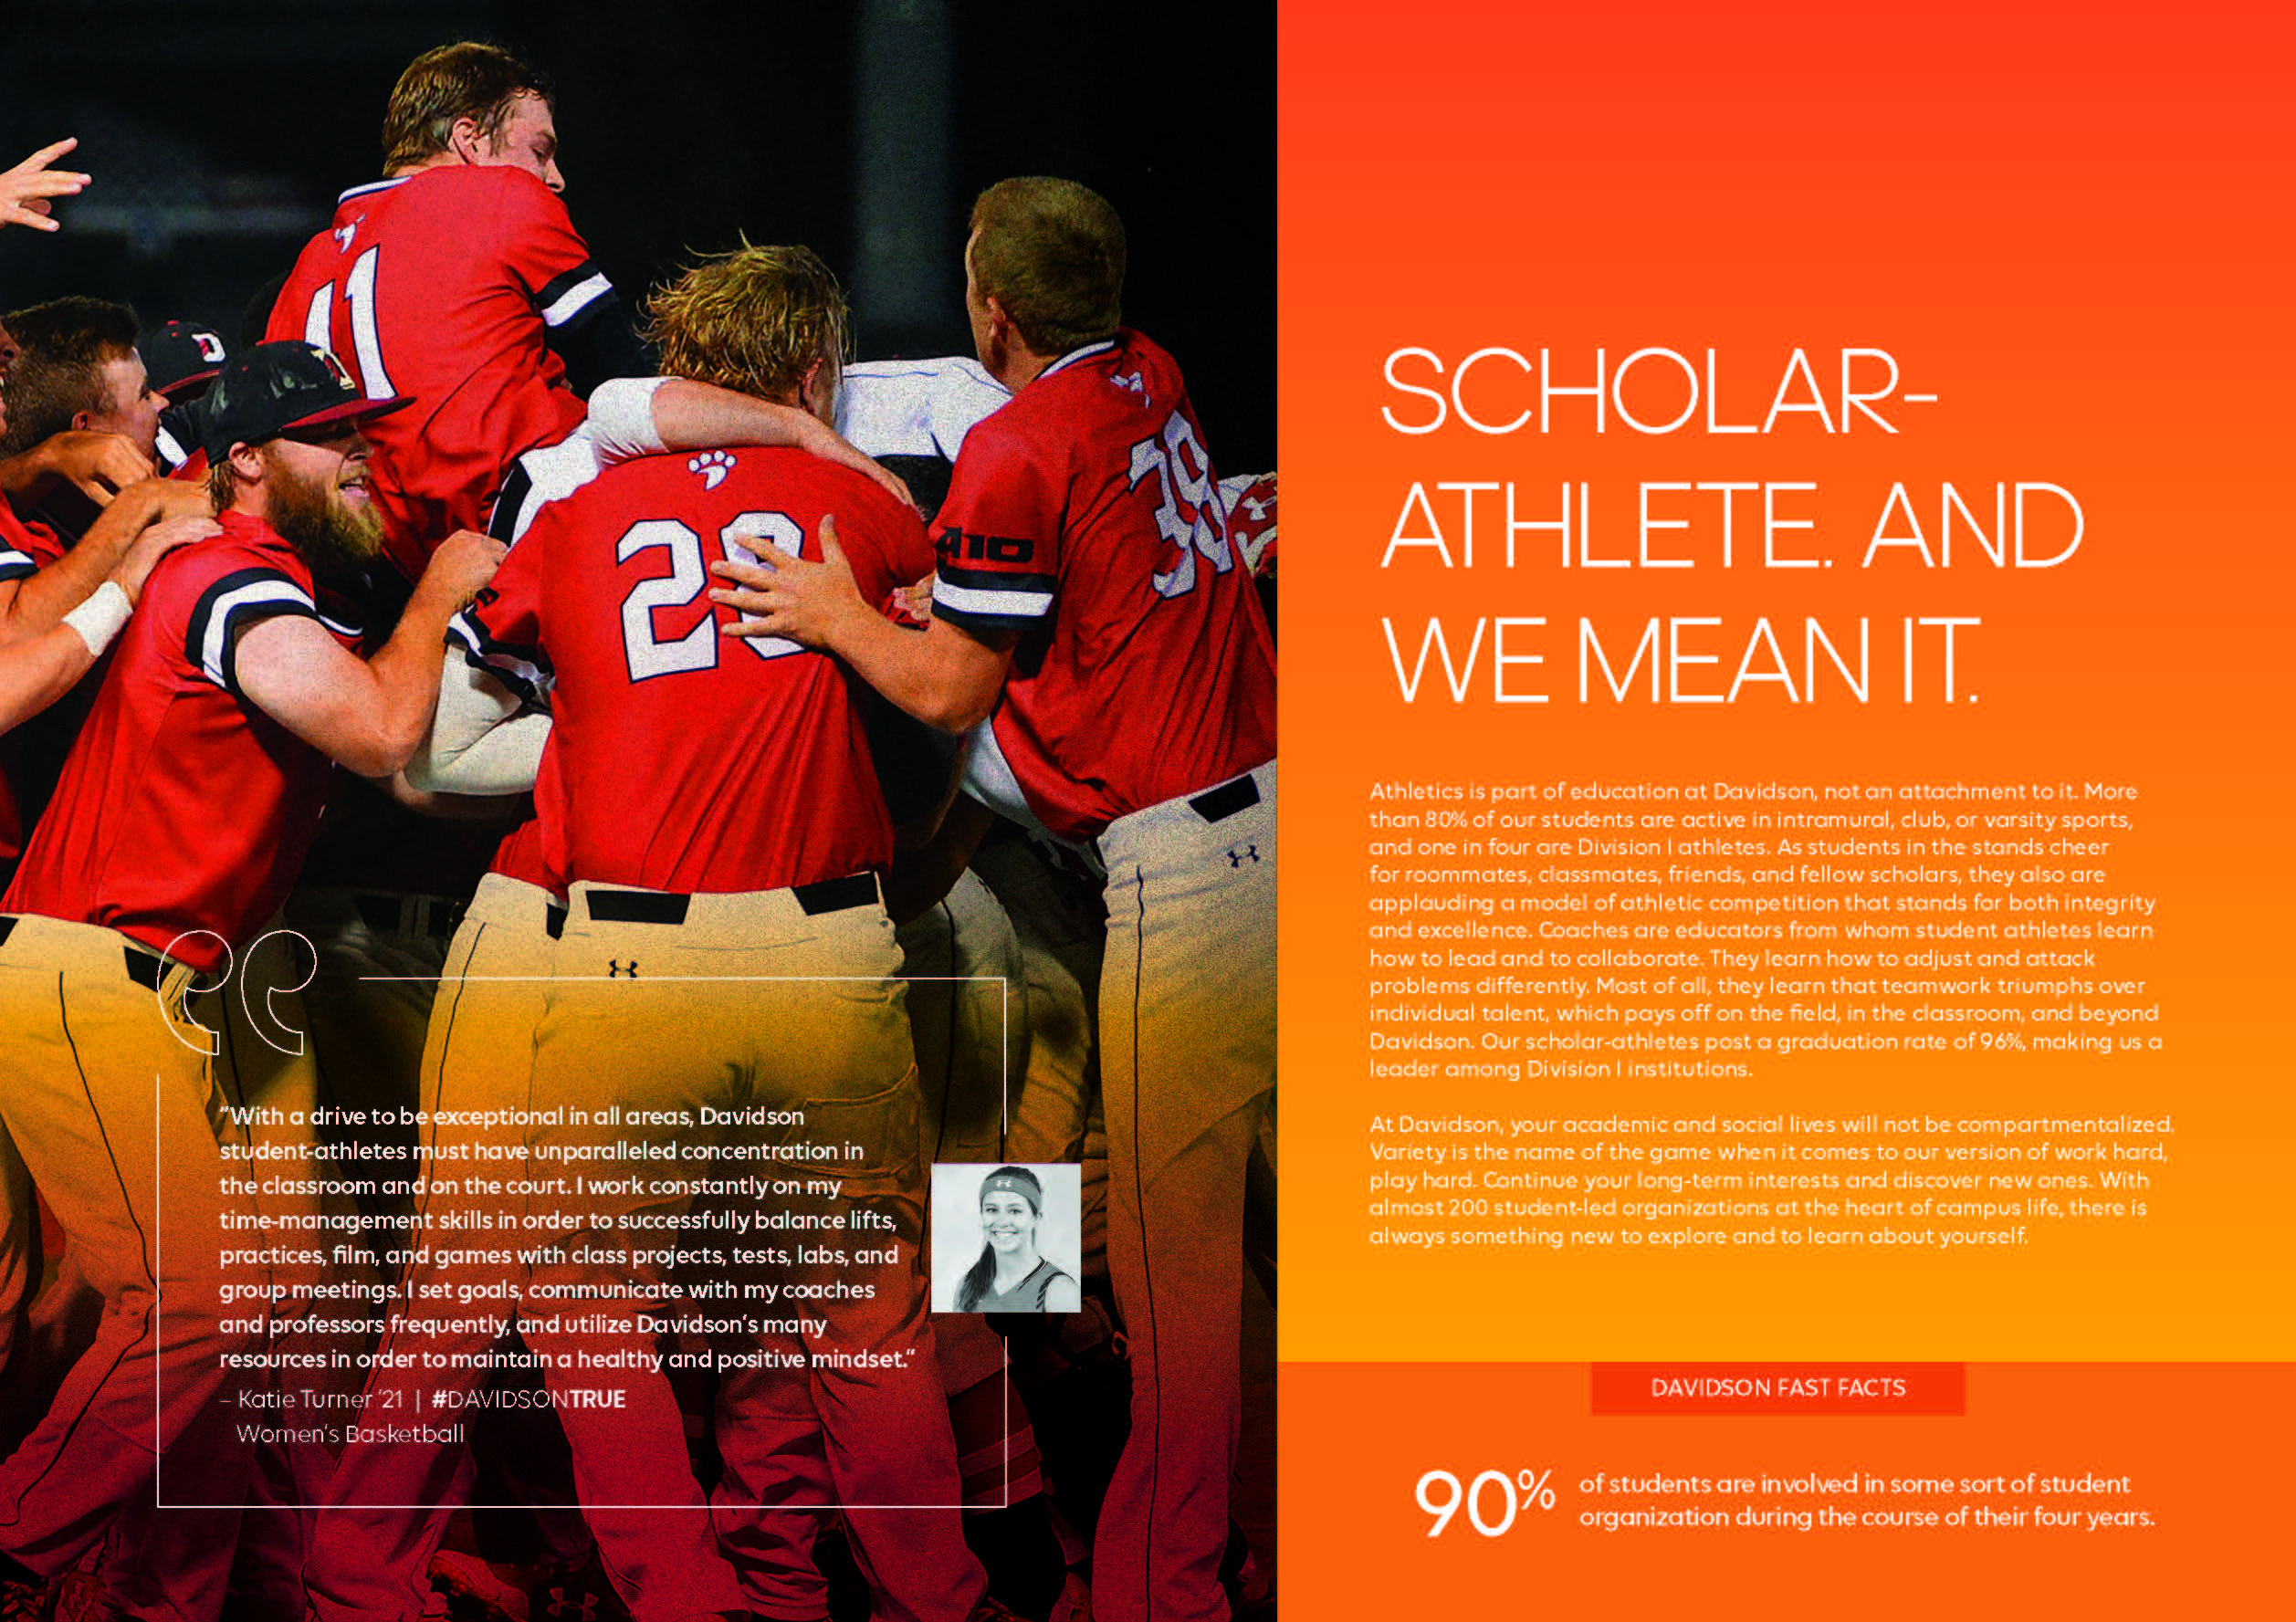 Viewbook: Scholar-athlete. And we mean it.